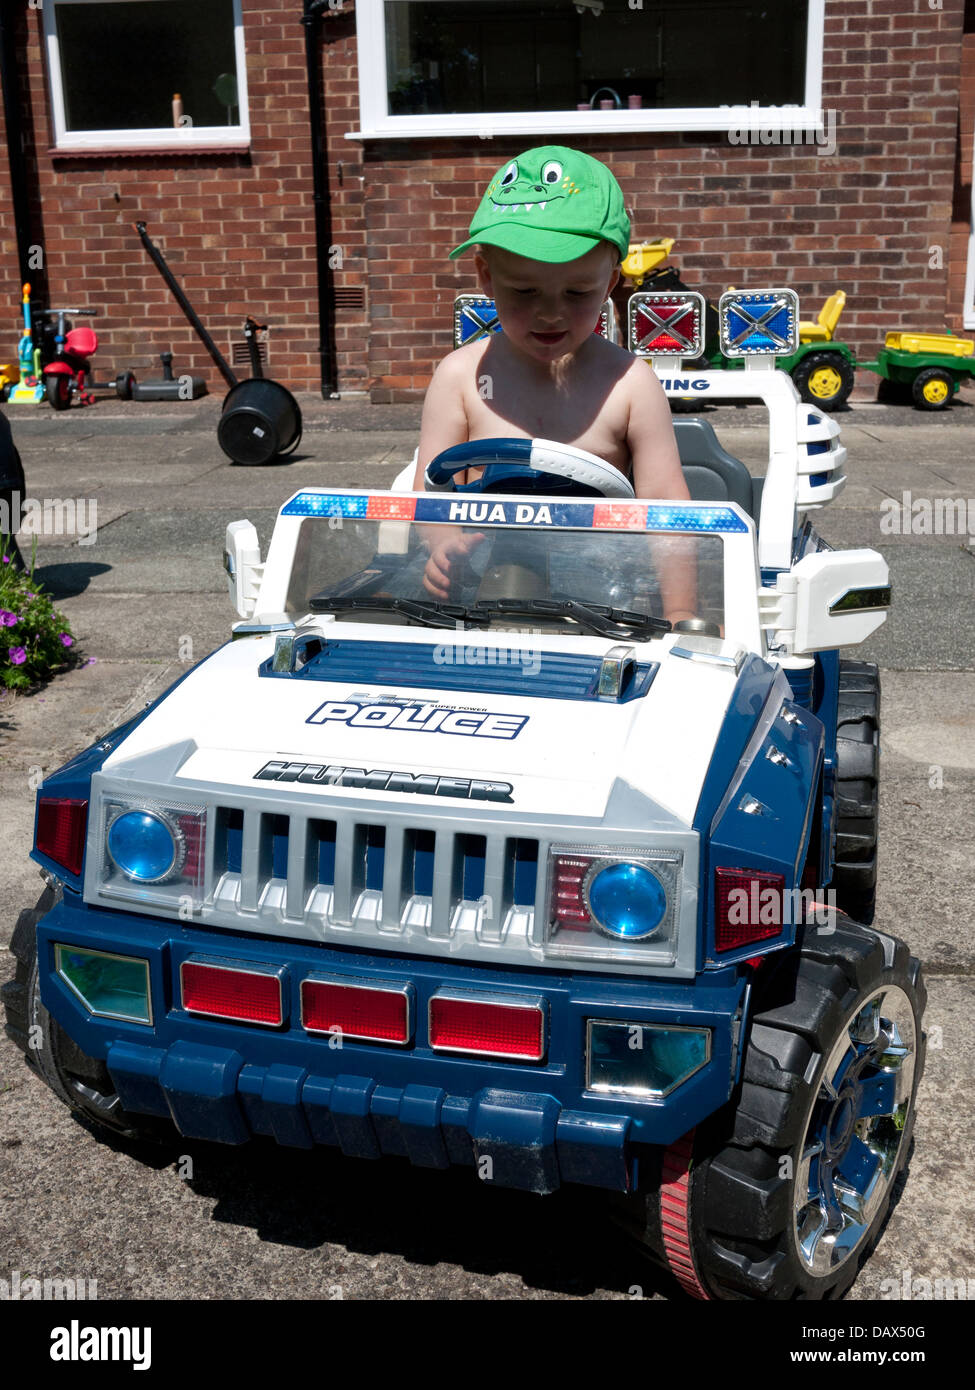 Young two year old boy in radio controlled car, England, UK. - Stock Image